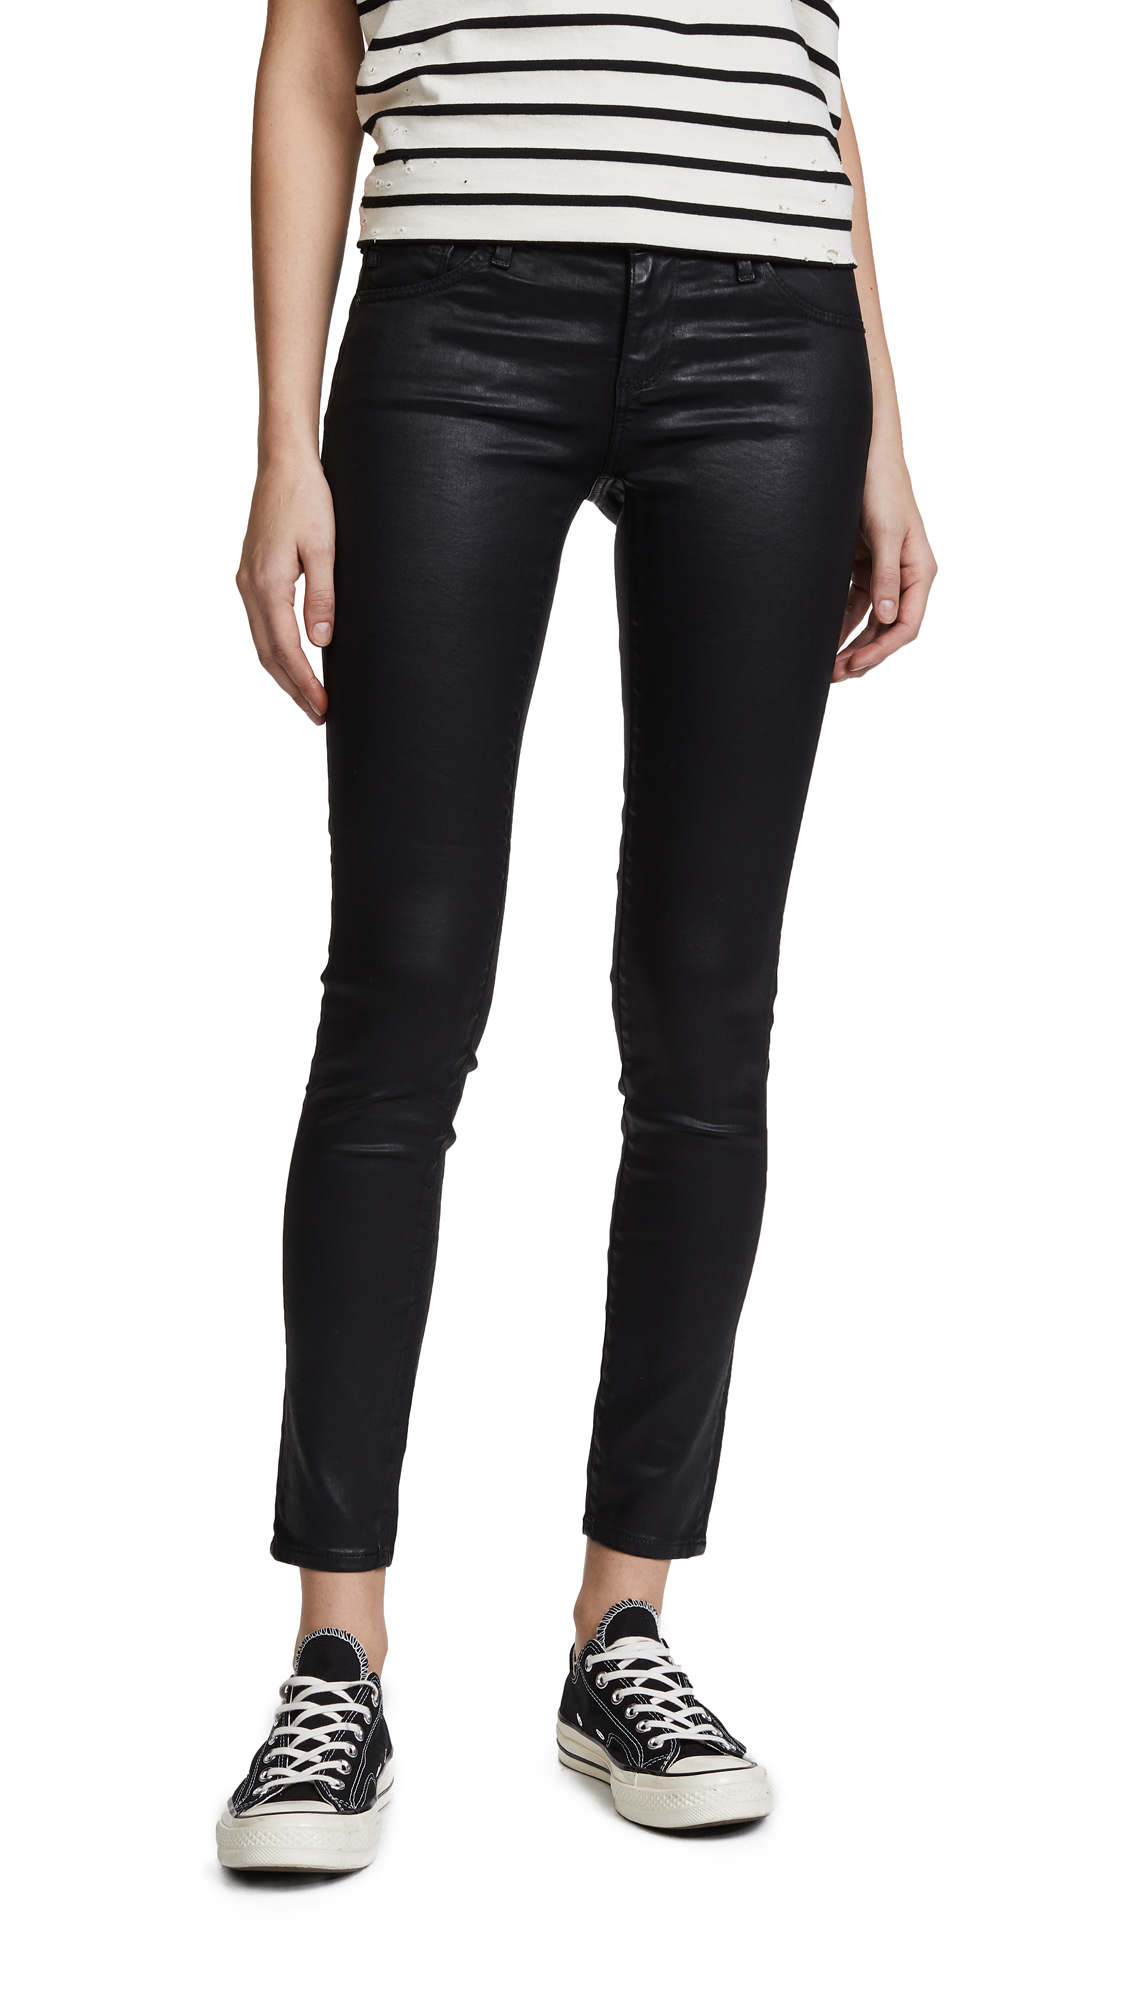 AG The Legging Ankle Jeans - Super Black